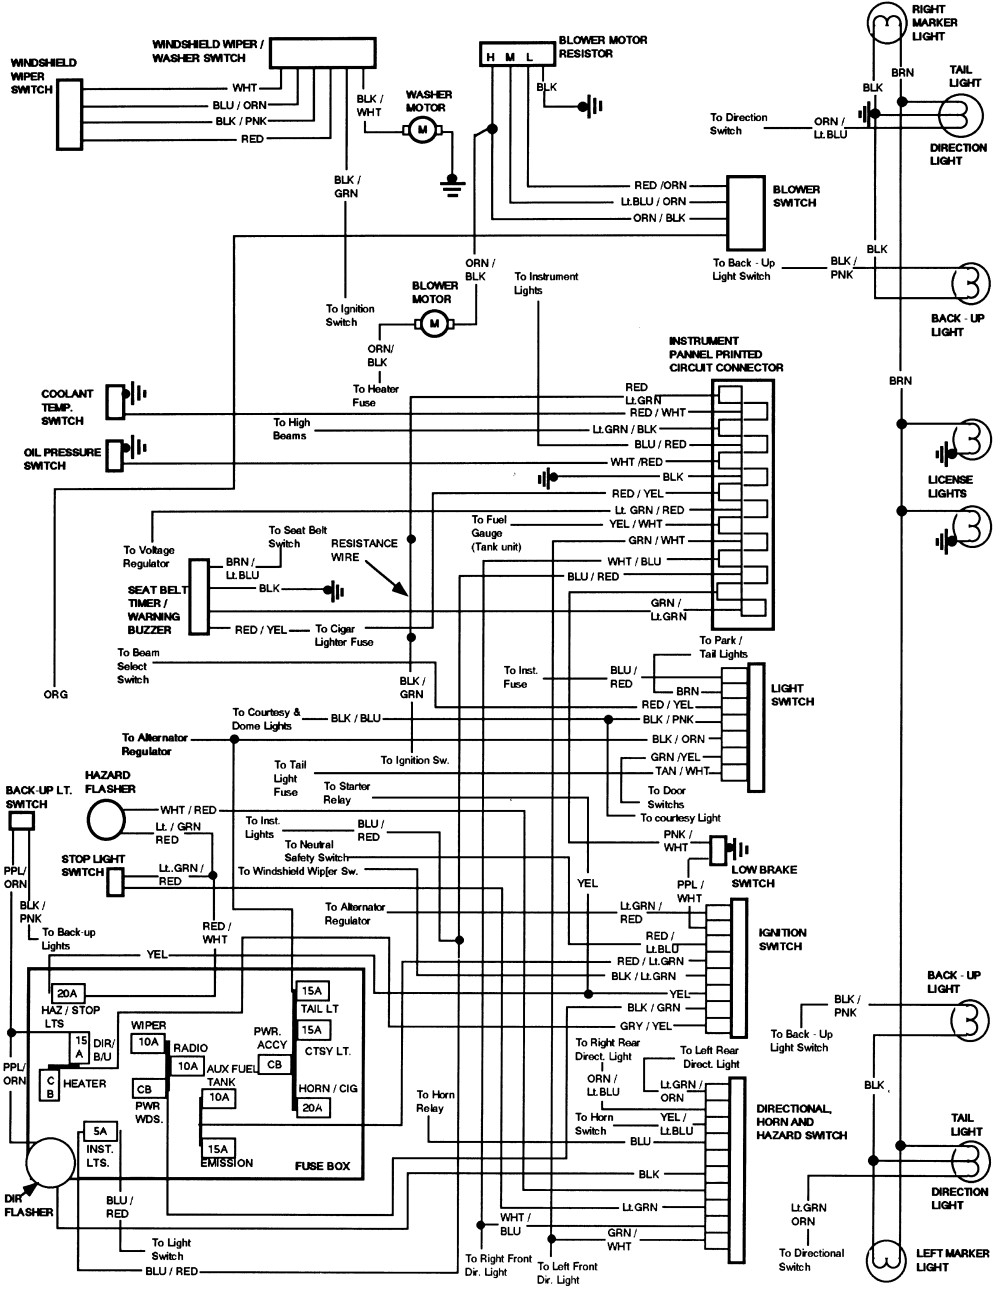 1985 ford f150 wiring diagram Collection-1985 ford f150 wiring diagram Download Wiring Diagram For 1985 Ford F150 Truck Enthusiasts Forums 12-n